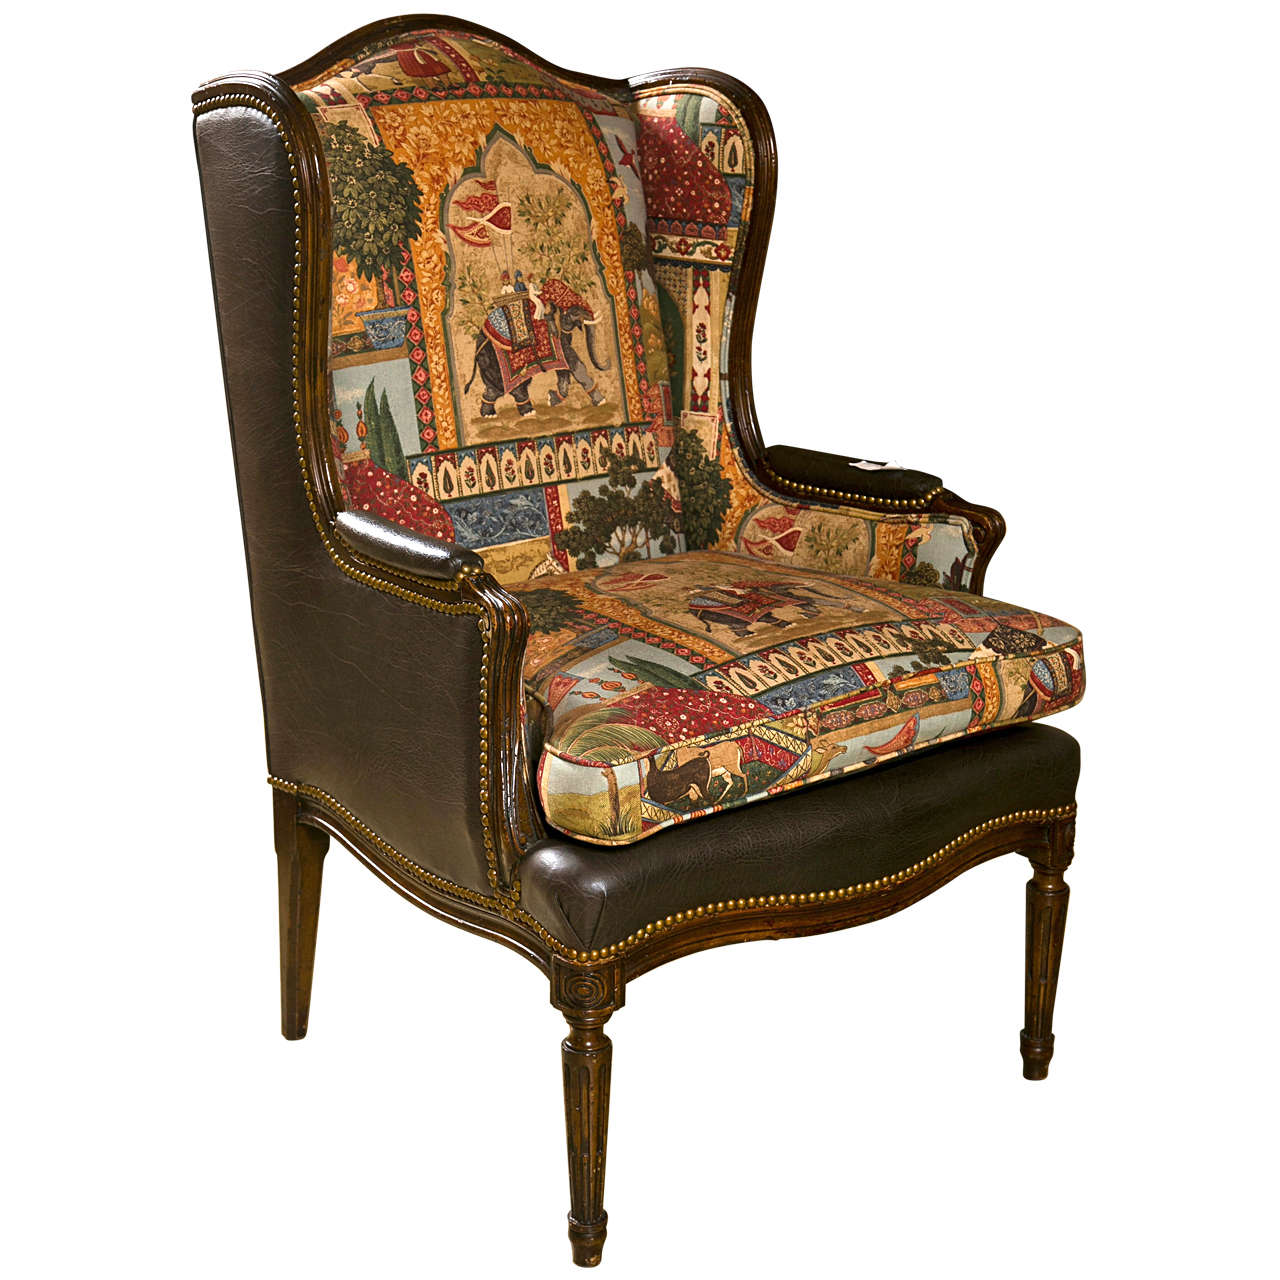 french louis xvi style wing back bergere chair at 1stdibs. Black Bedroom Furniture Sets. Home Design Ideas